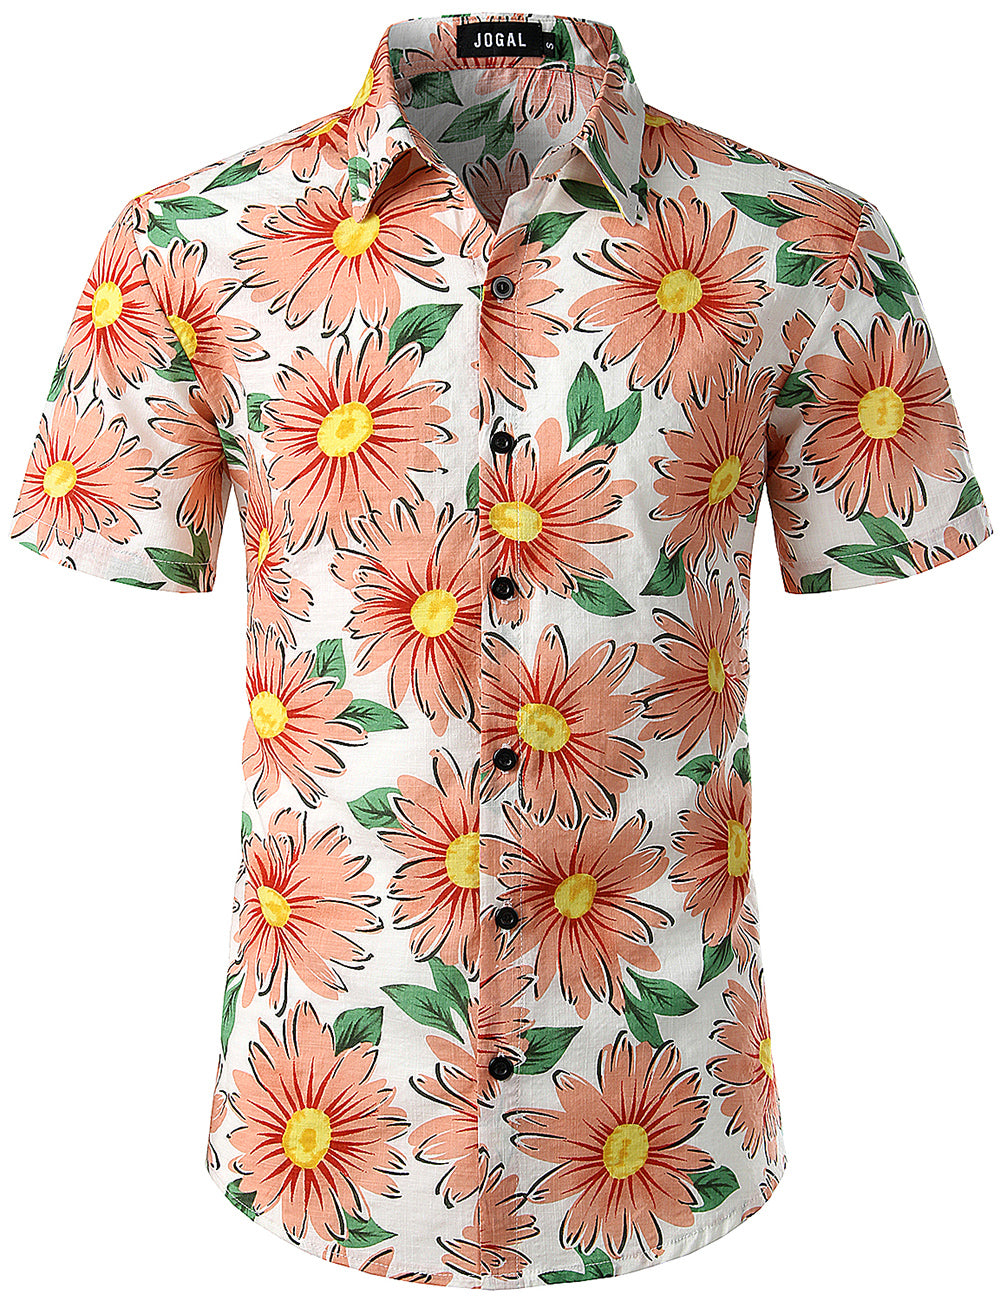 JOGAL Men's Flower Casual Button Down Short Sleeve Hawaiian Shirt(Daisy)